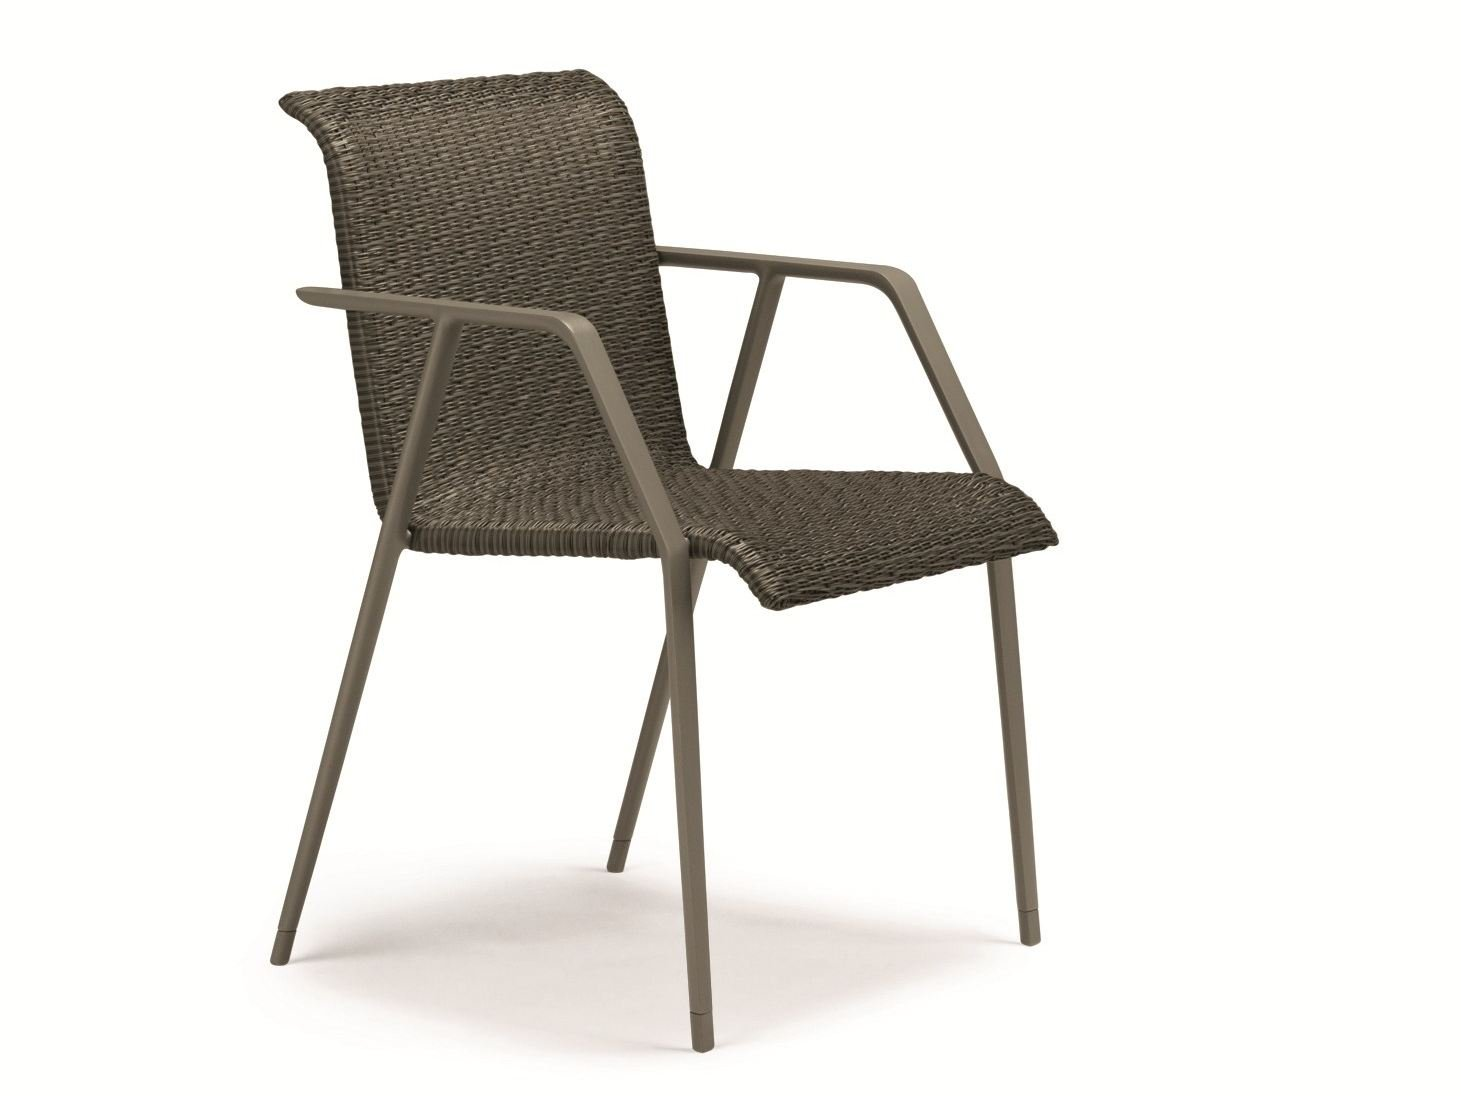 Wa garden chair by dedon design toan nguyen - Dedon outdoor furniture prices ...